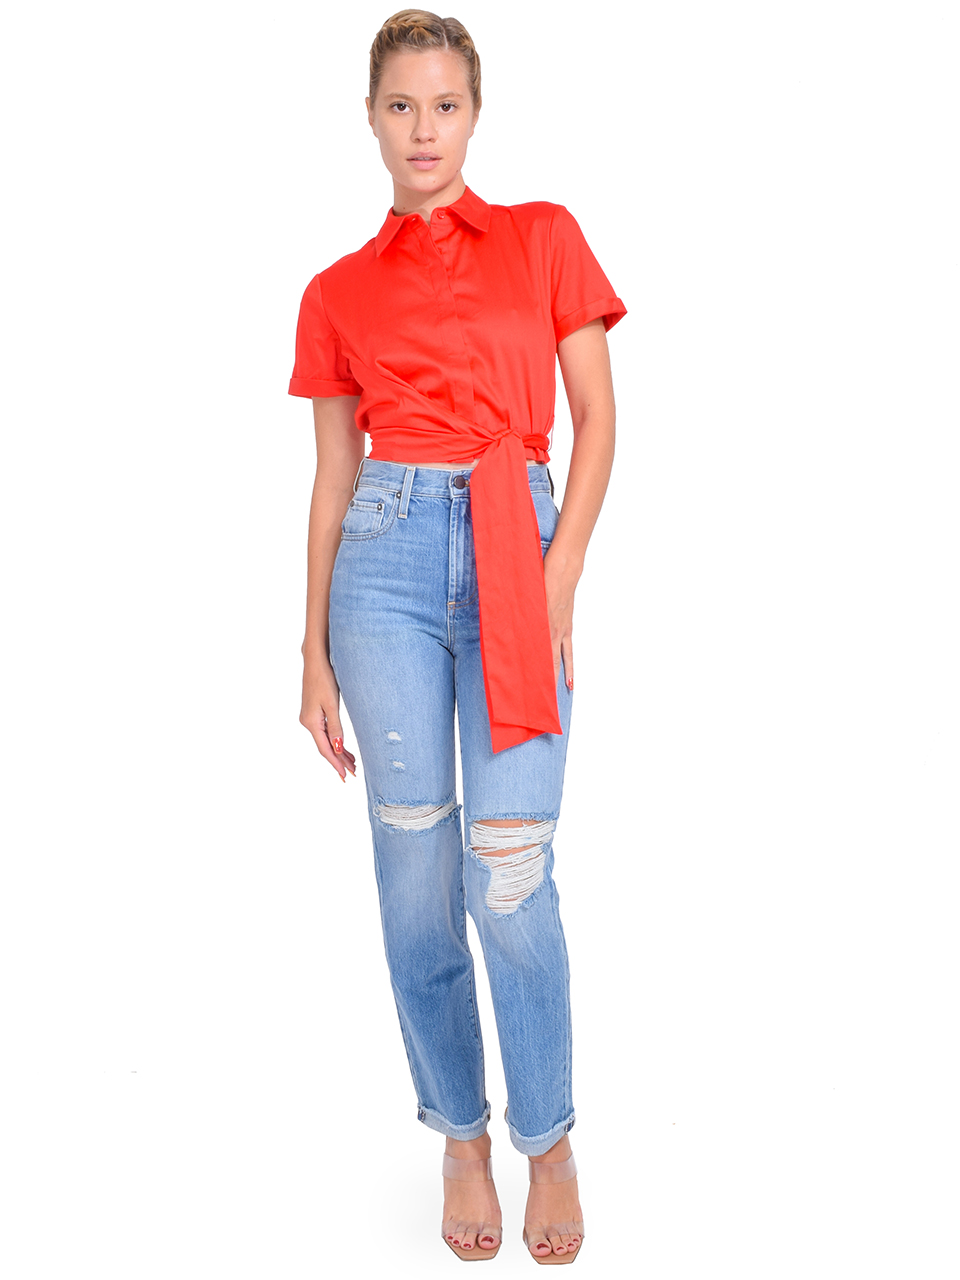 Alice + Olivia Naomi Tie Front Top in Bright Poppy Full Outfit